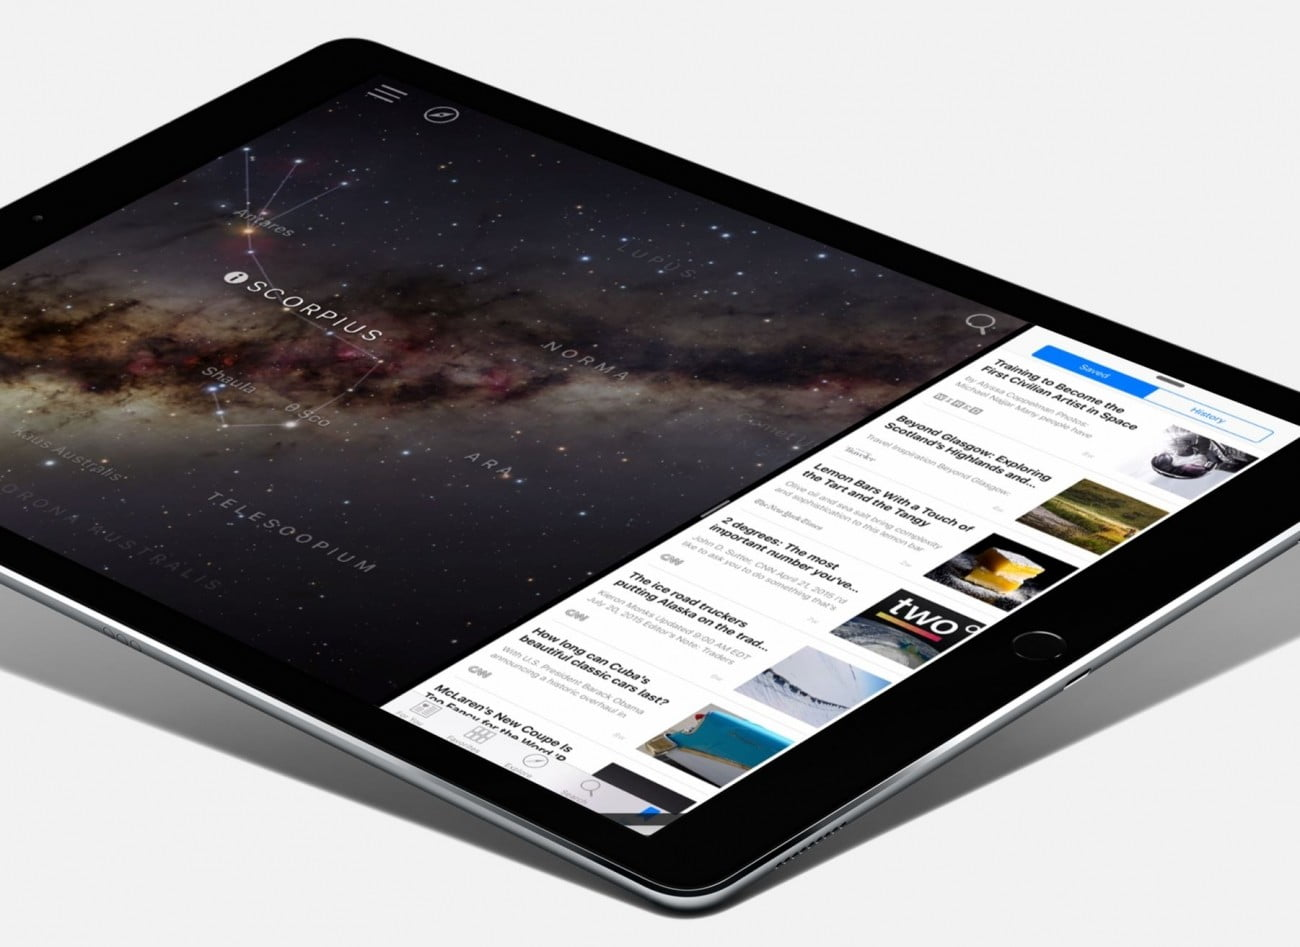 Apple Reduces iPad Panel Orders to LG by 90%